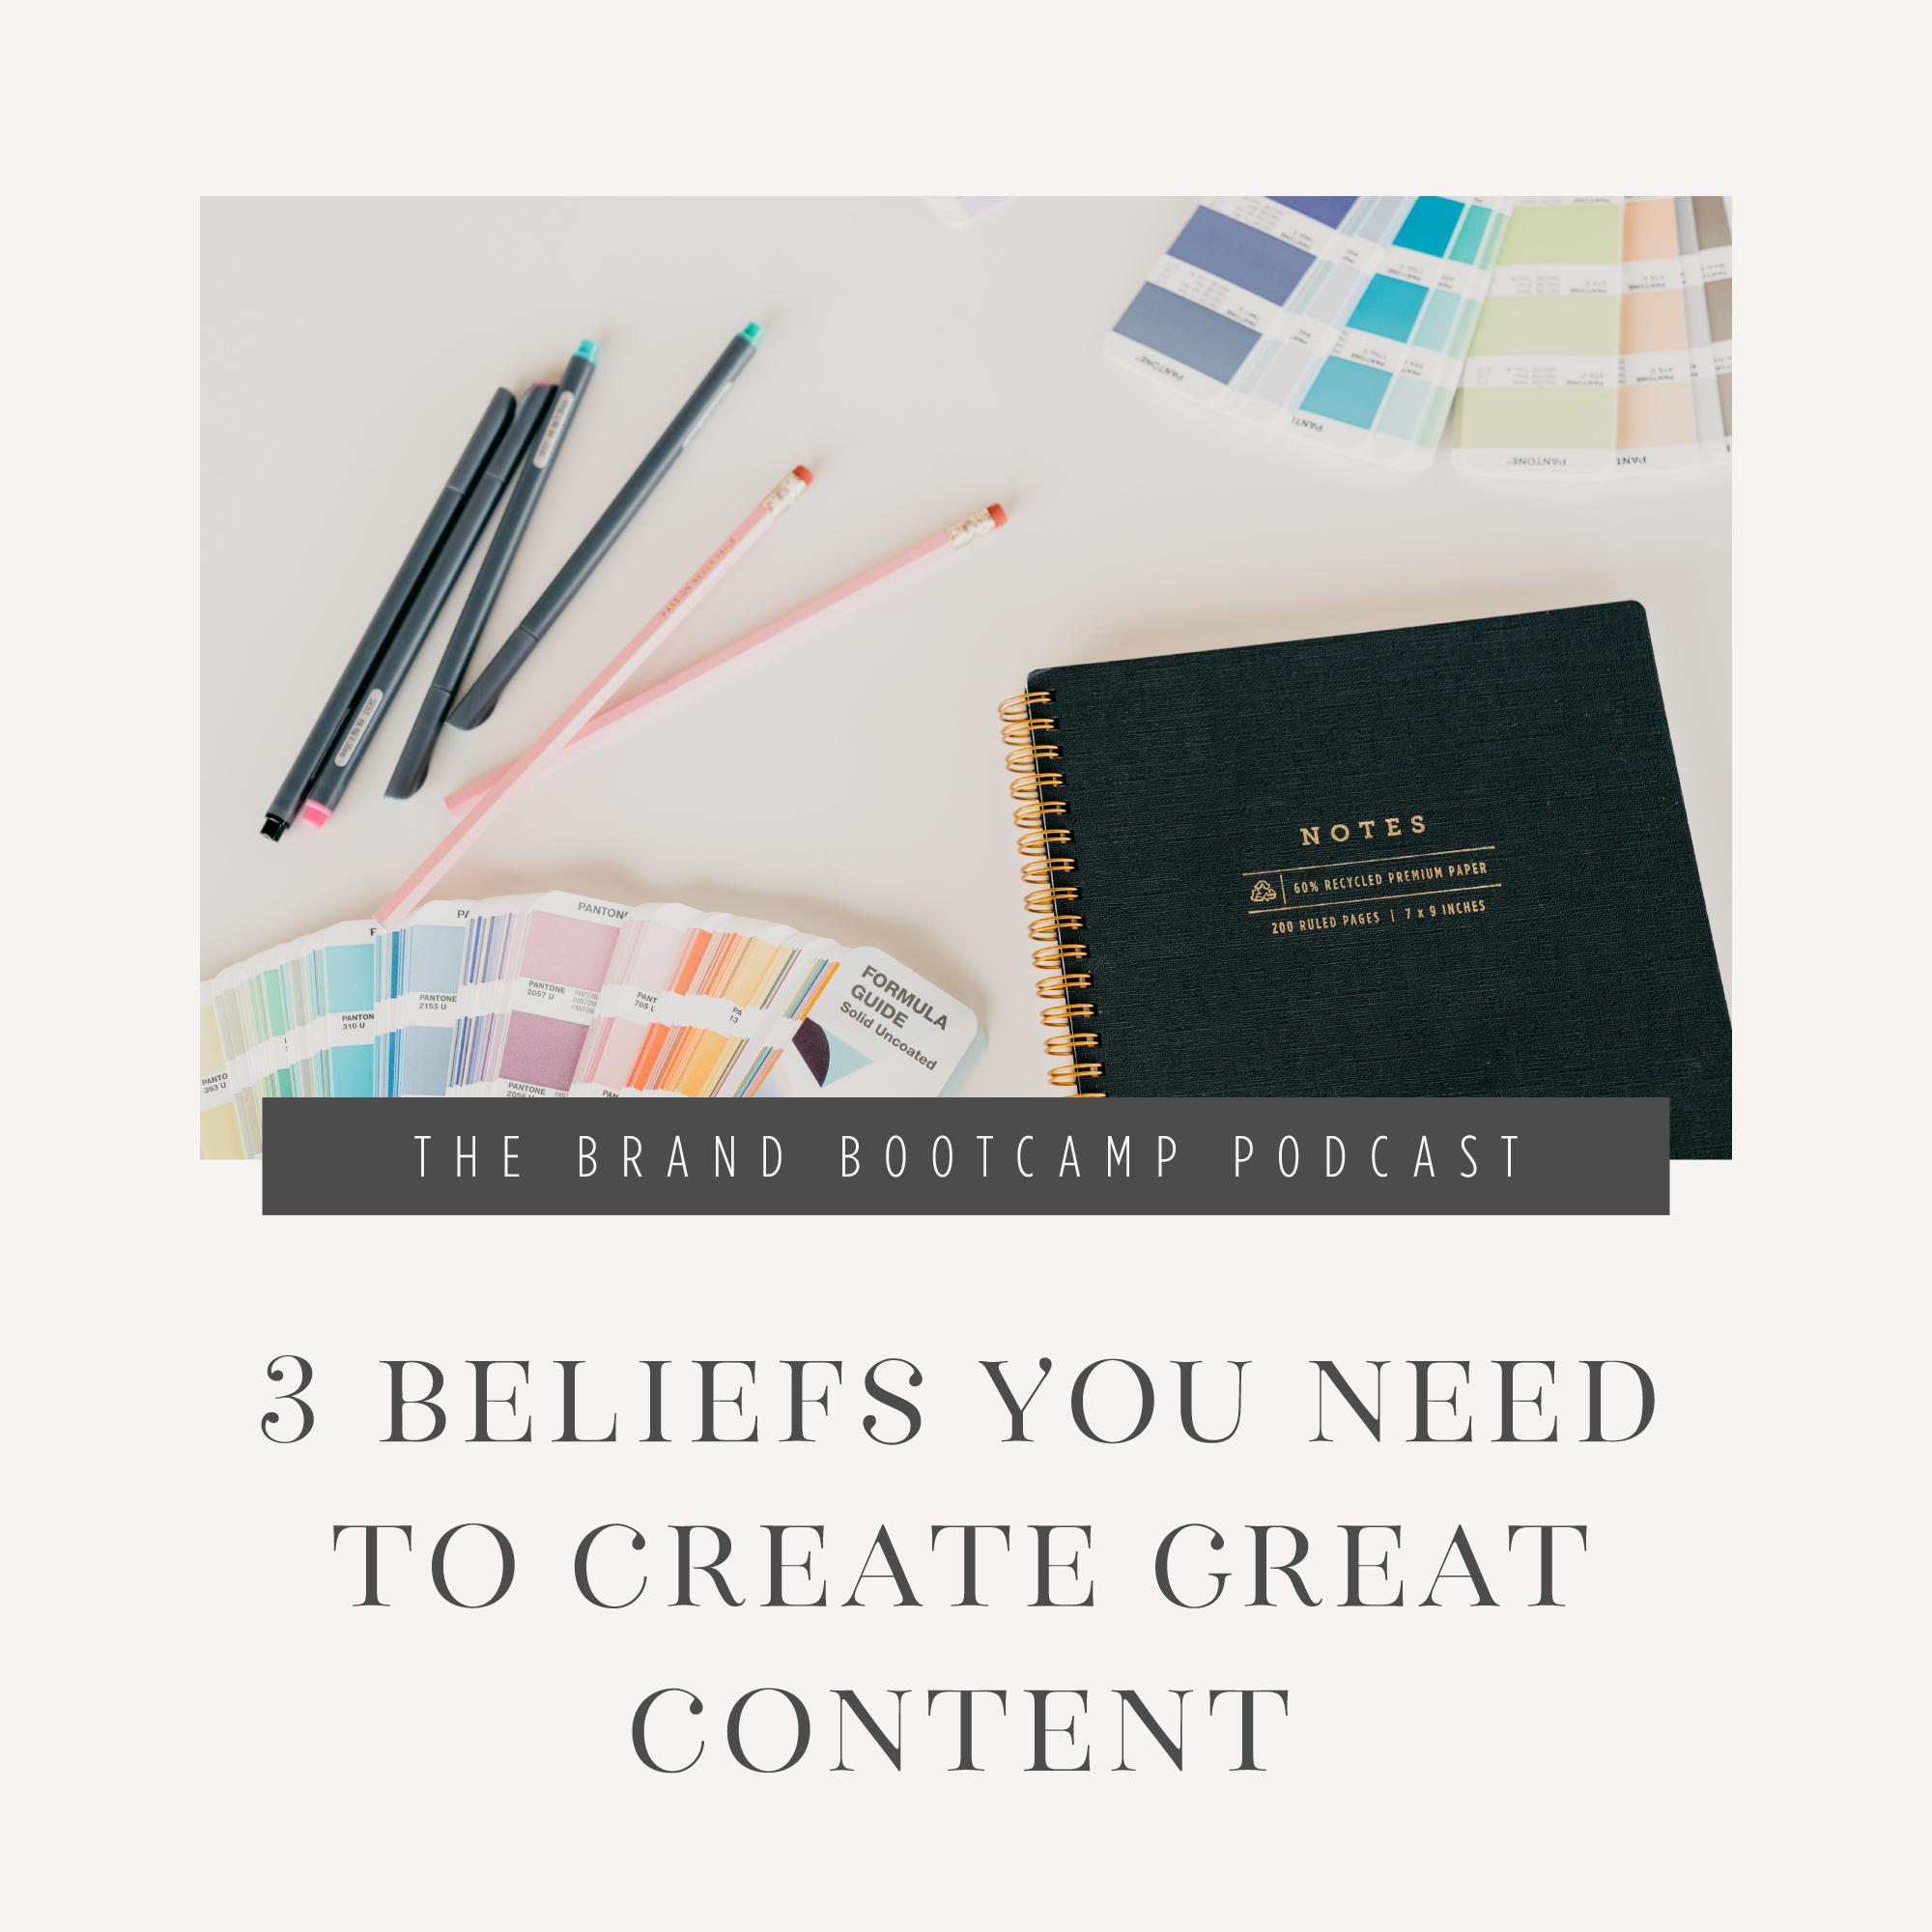 3 Beliefs You Need To Create Great Content